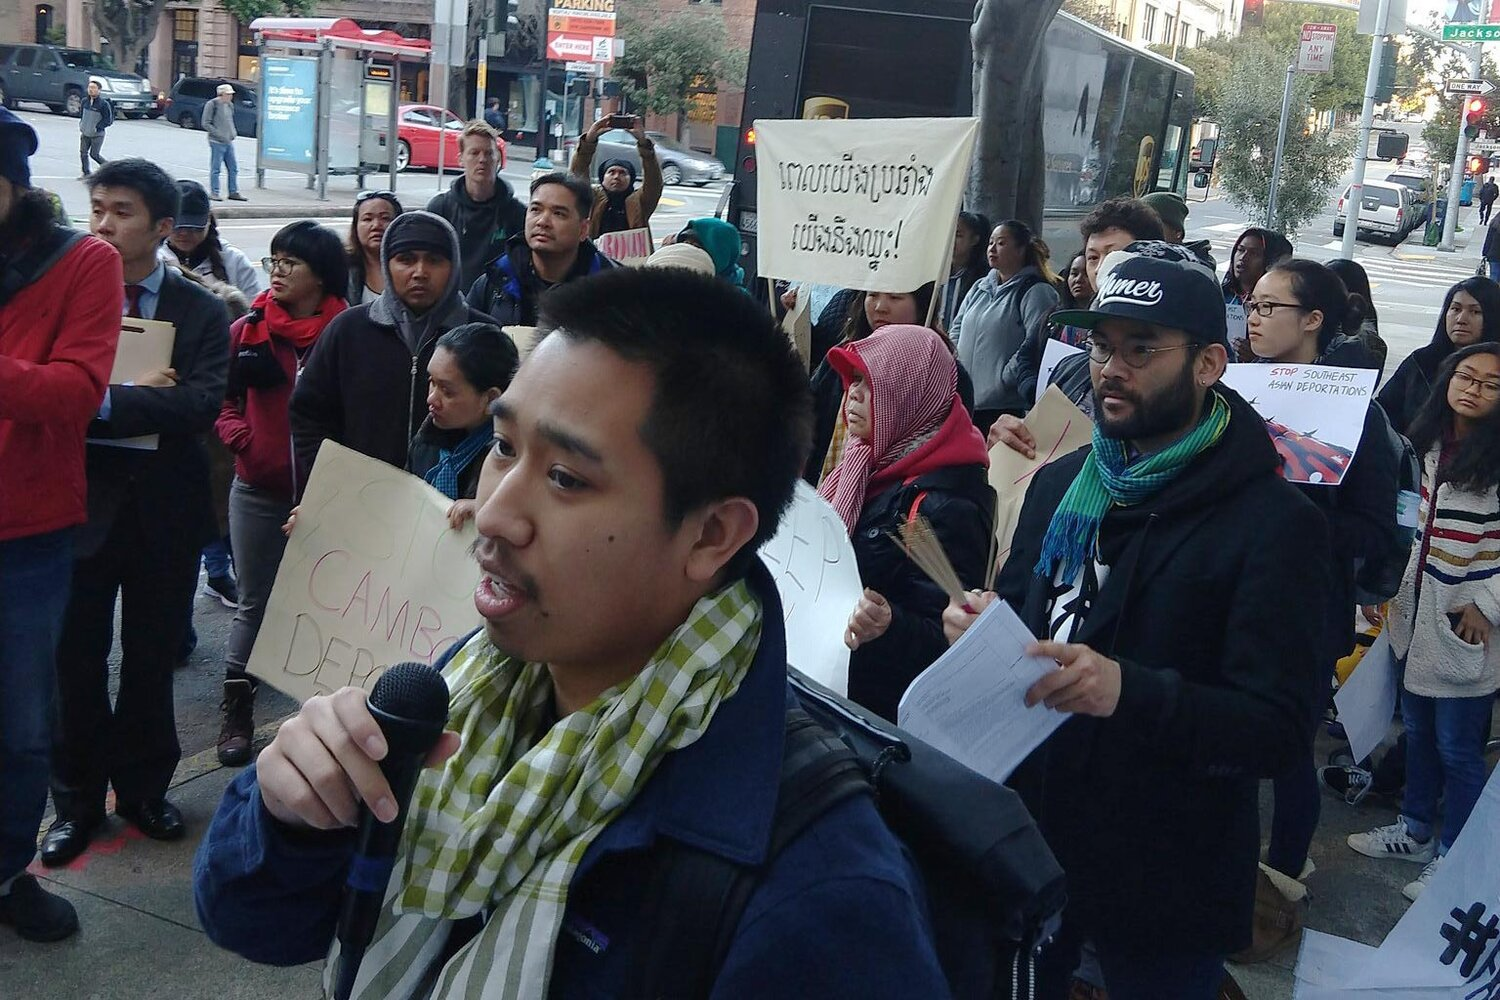 Nathaniel Tan speaking at a rally in front of San Francisco ICE building during ICE check-ins of Bay Area Cambodians.